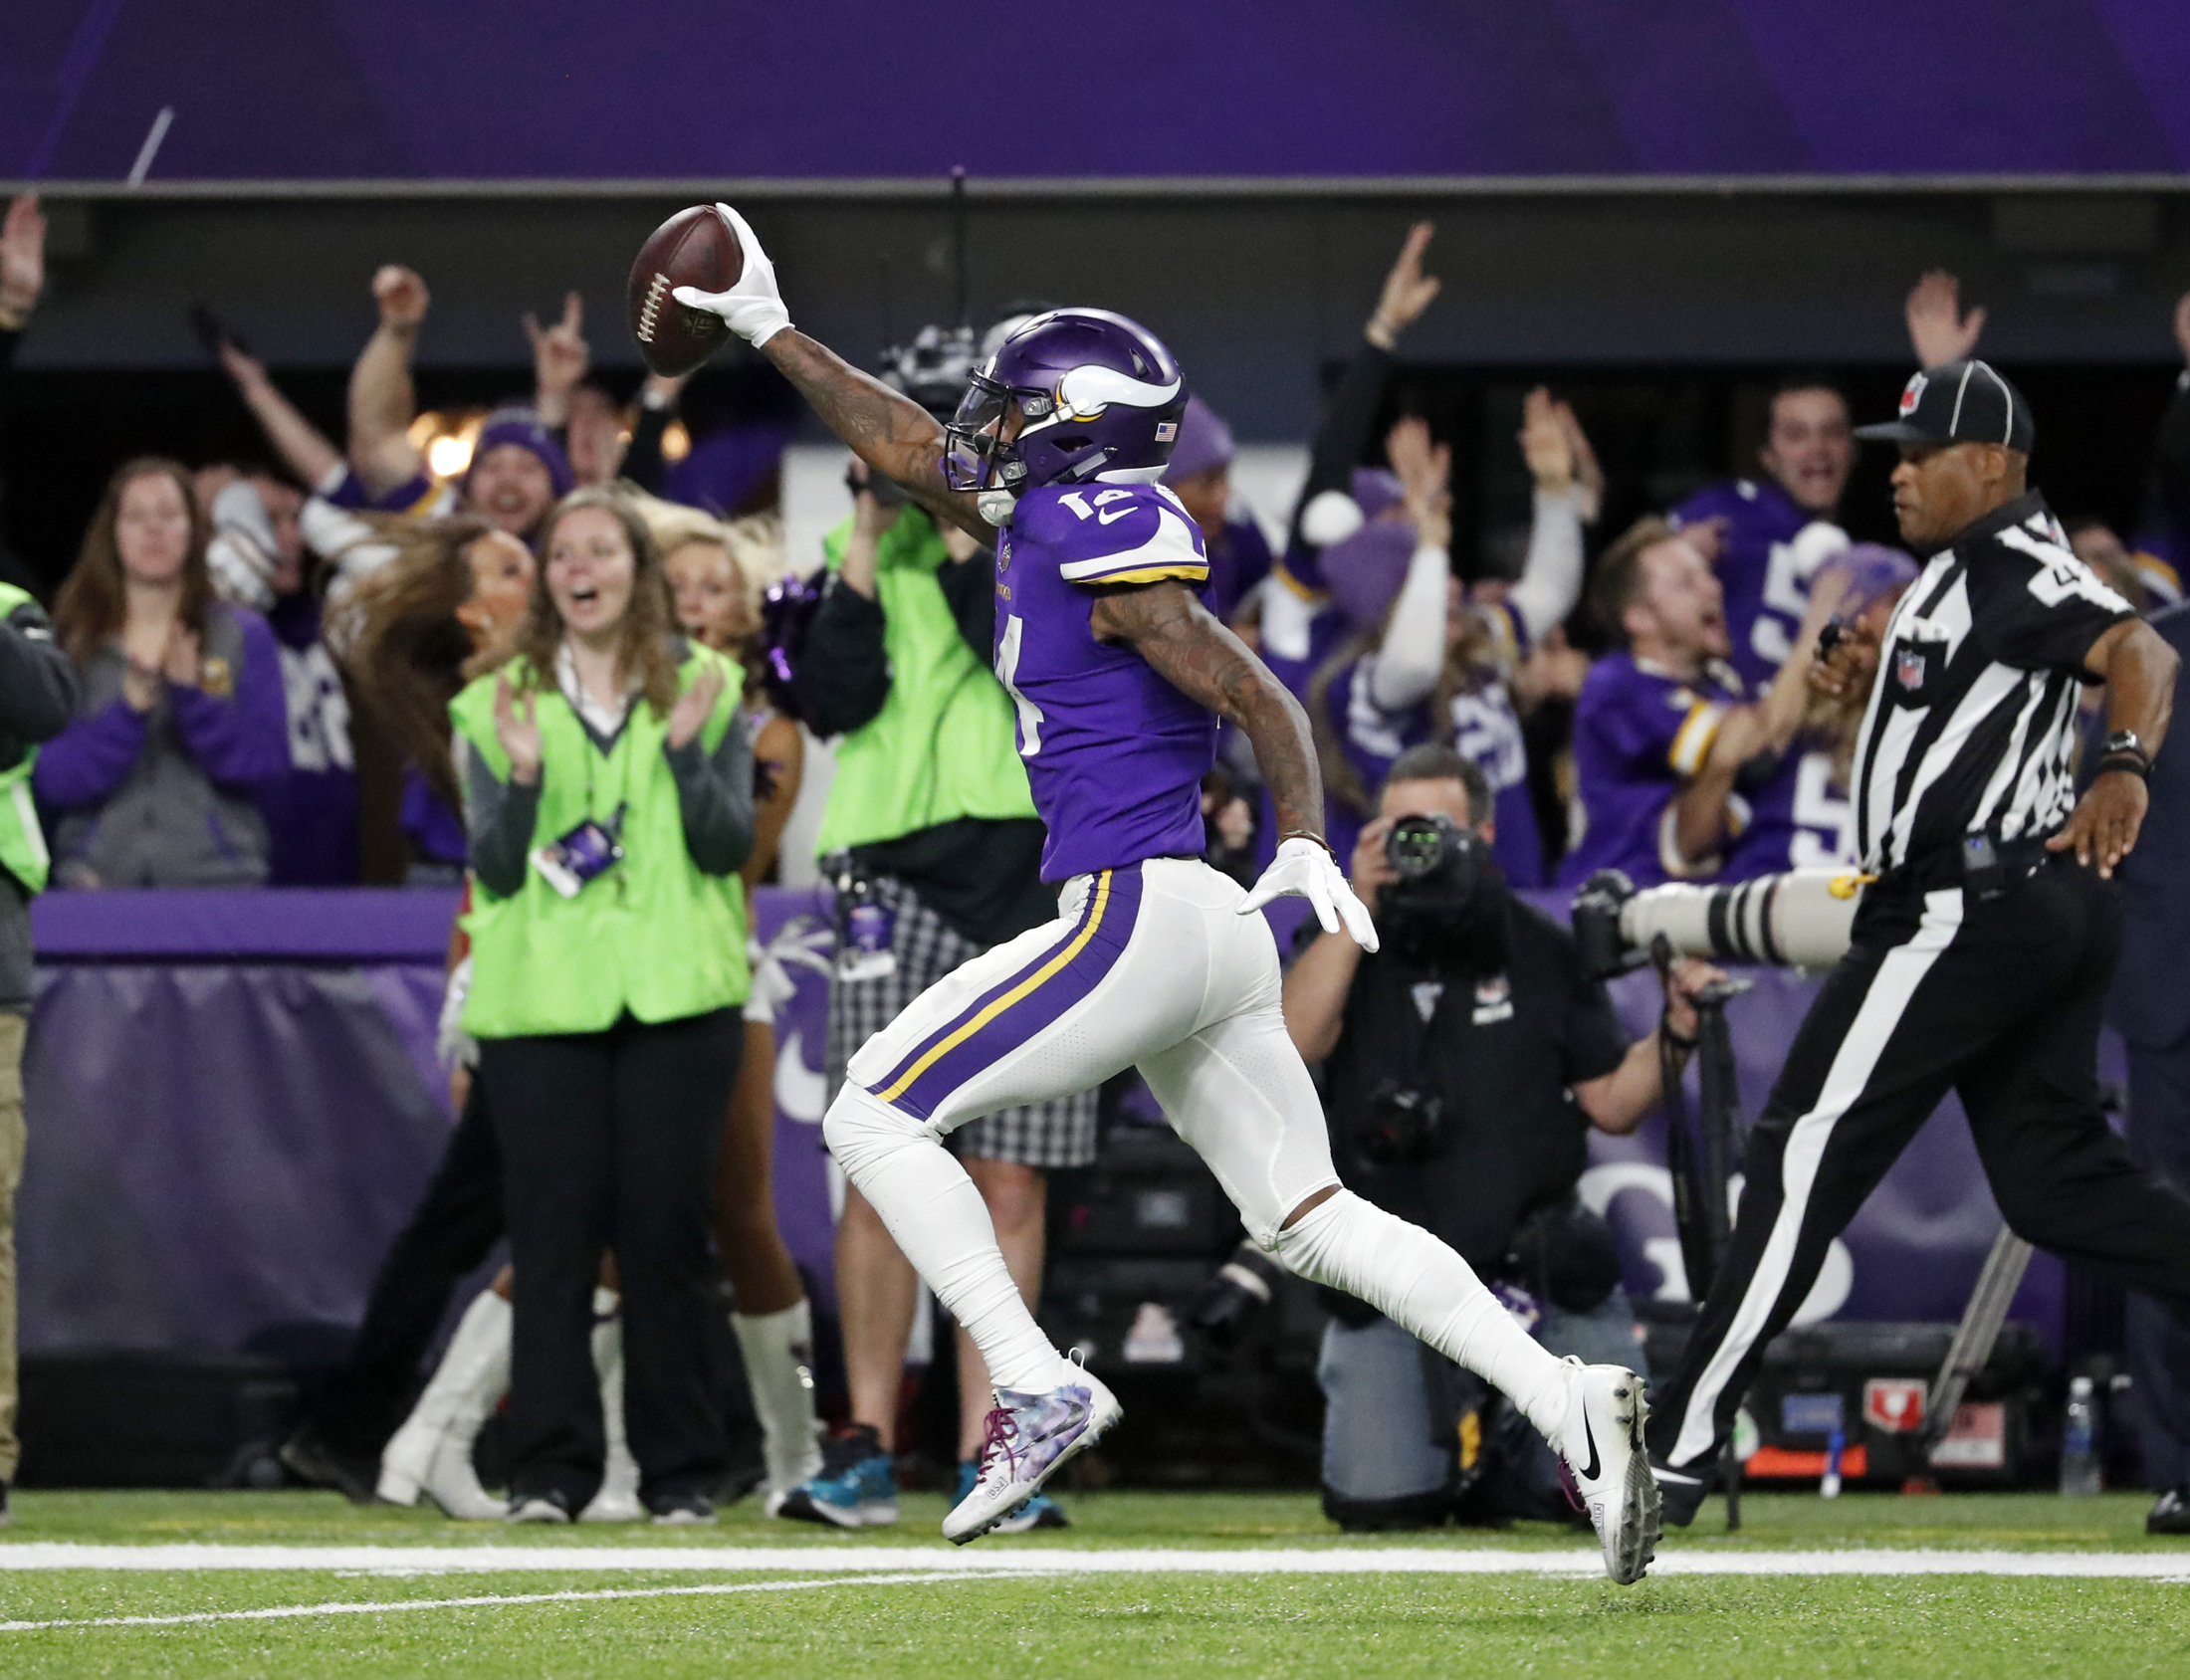 FILE - In this Sunday, Jan. 14, 2018, file photo, Minnesota Vikings wide receiver Stefon Diggs (14) runs in for a game winning touchdown against the New Orleans Saints during the second half of an NFL divisional football playoff game in Minneapolis. (Jeff Roberson, File/AP)